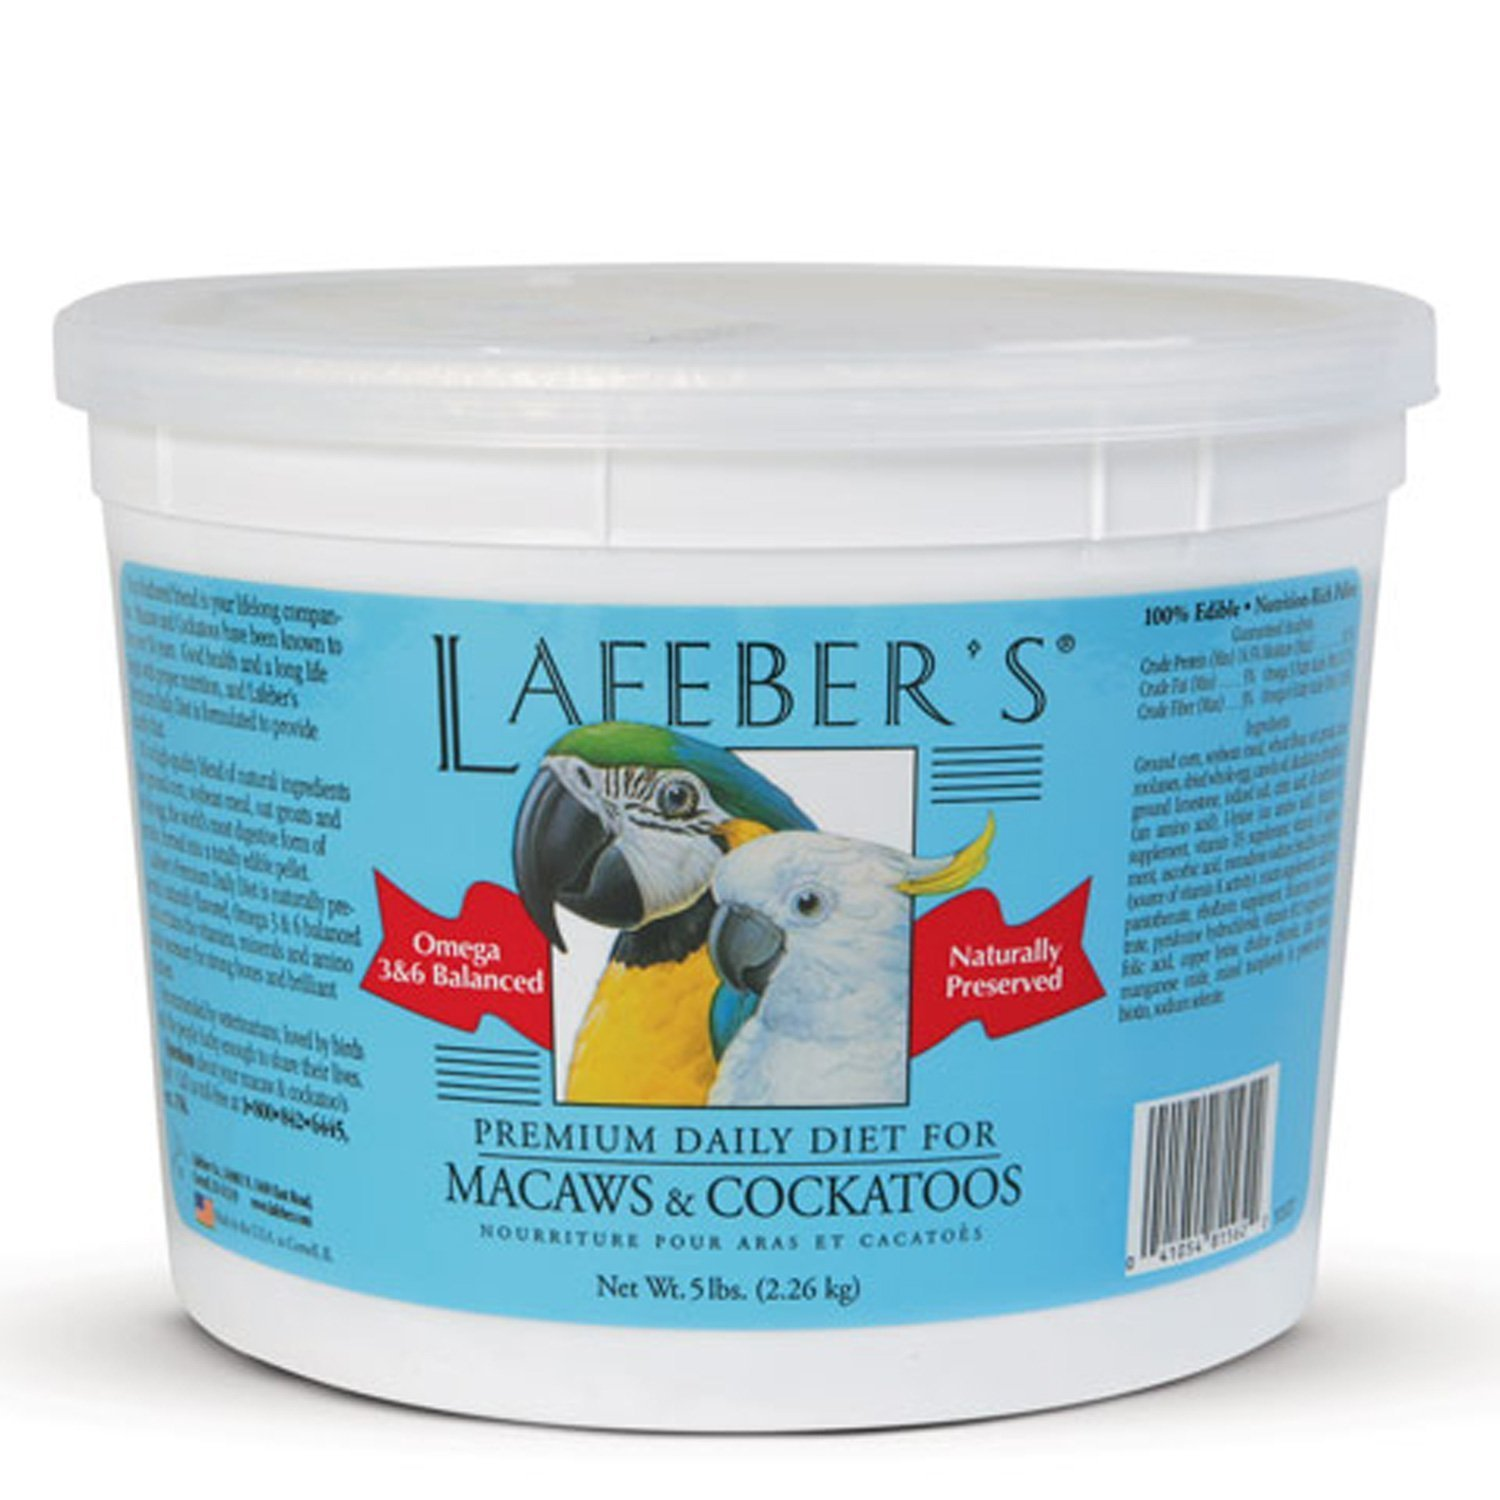 LAFEBER'S Premium Daily Diet Pellets Pet Bird Food, Made with Non-GMO and Human-Grade Ingredients, for Macaws and Cockatoos, 5 lbs by LAFEBER'S